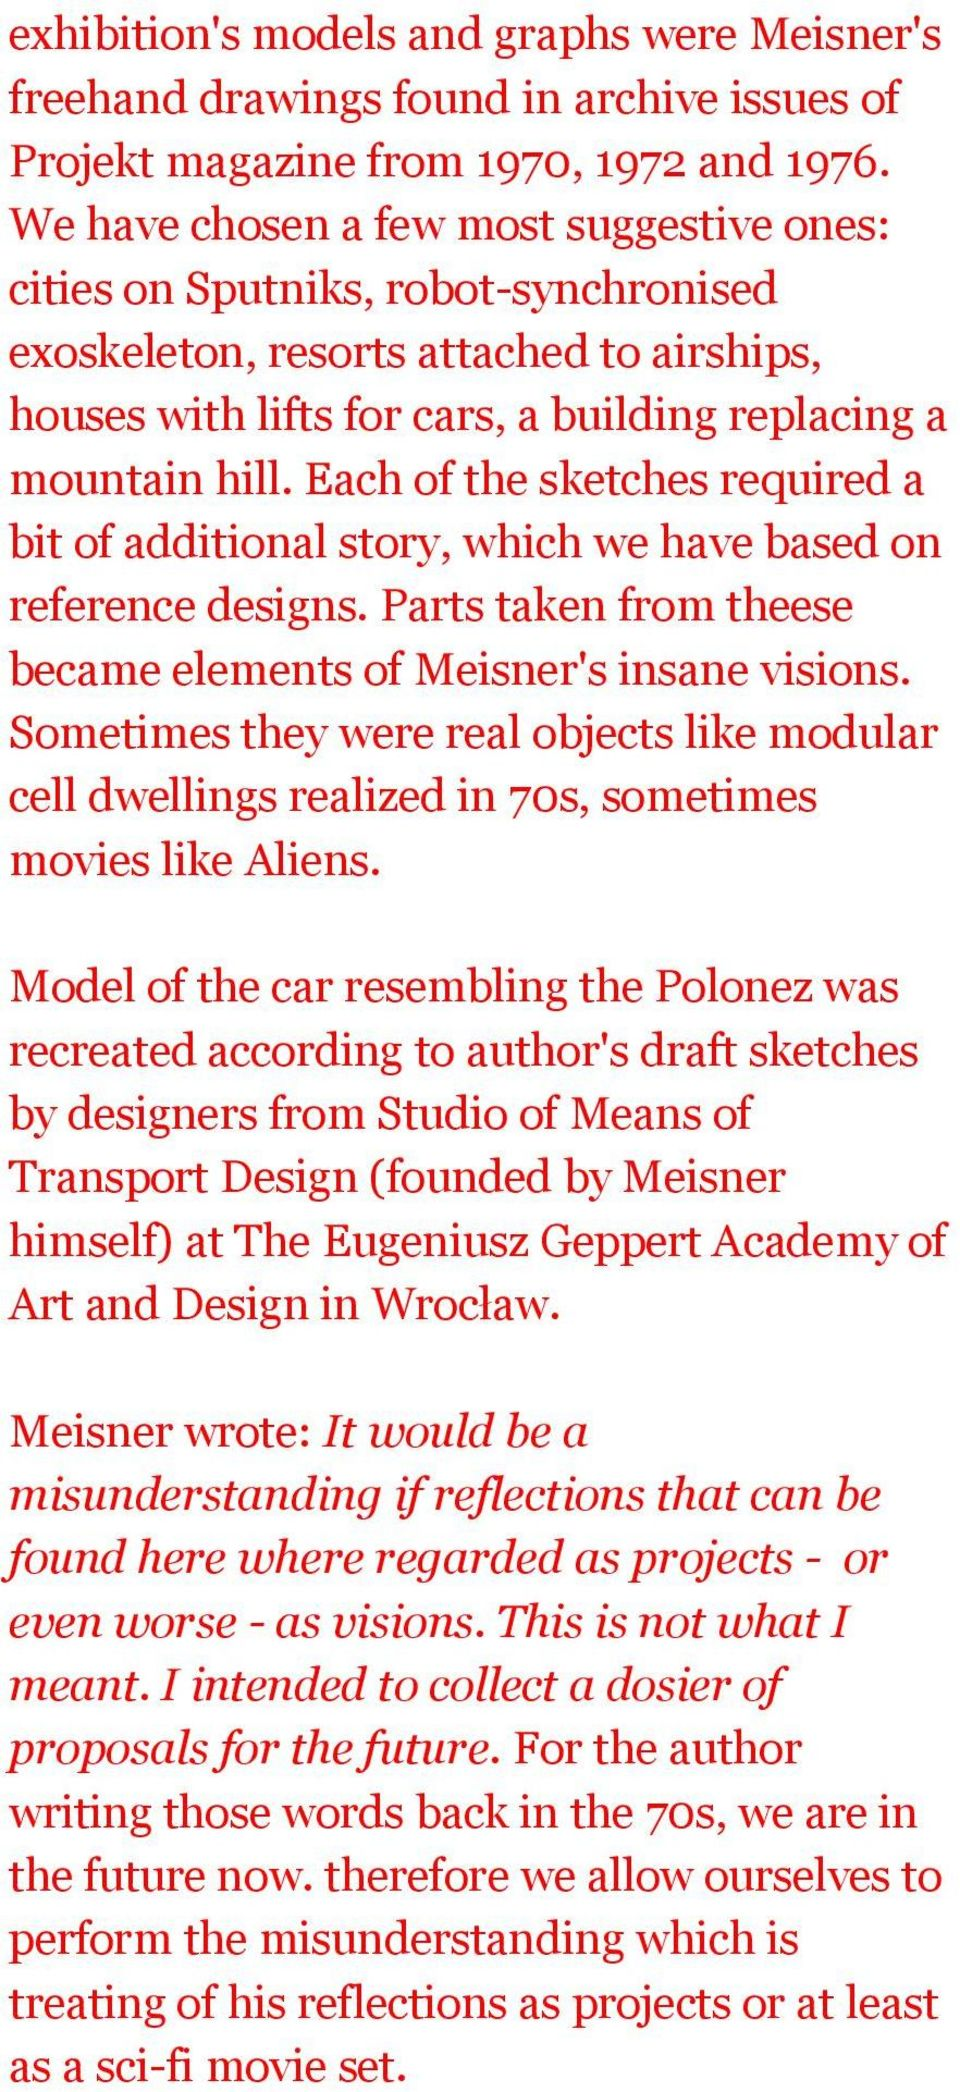 Each of the sketches required a bit of additional story, which we have based on reference designs. Parts taken from theese became elements of Meisner's insane visions.